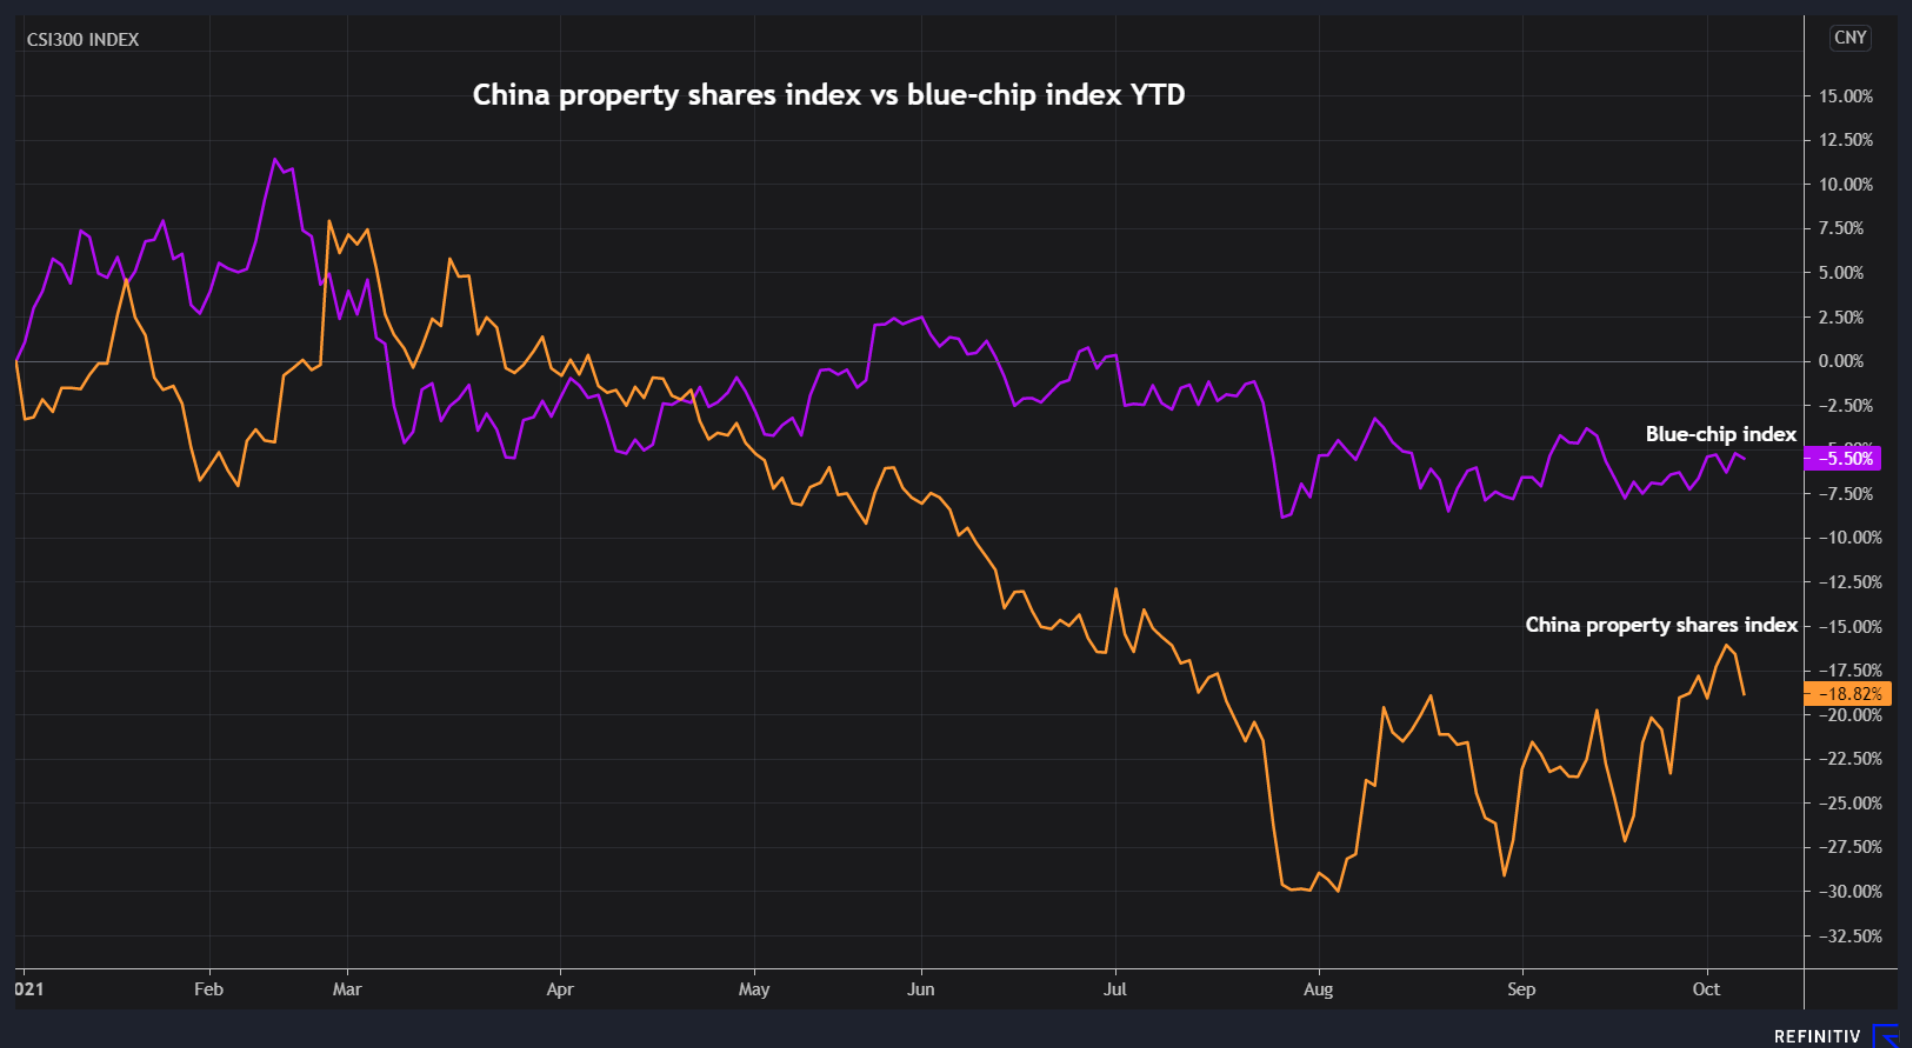 China property shares vs blue-chips